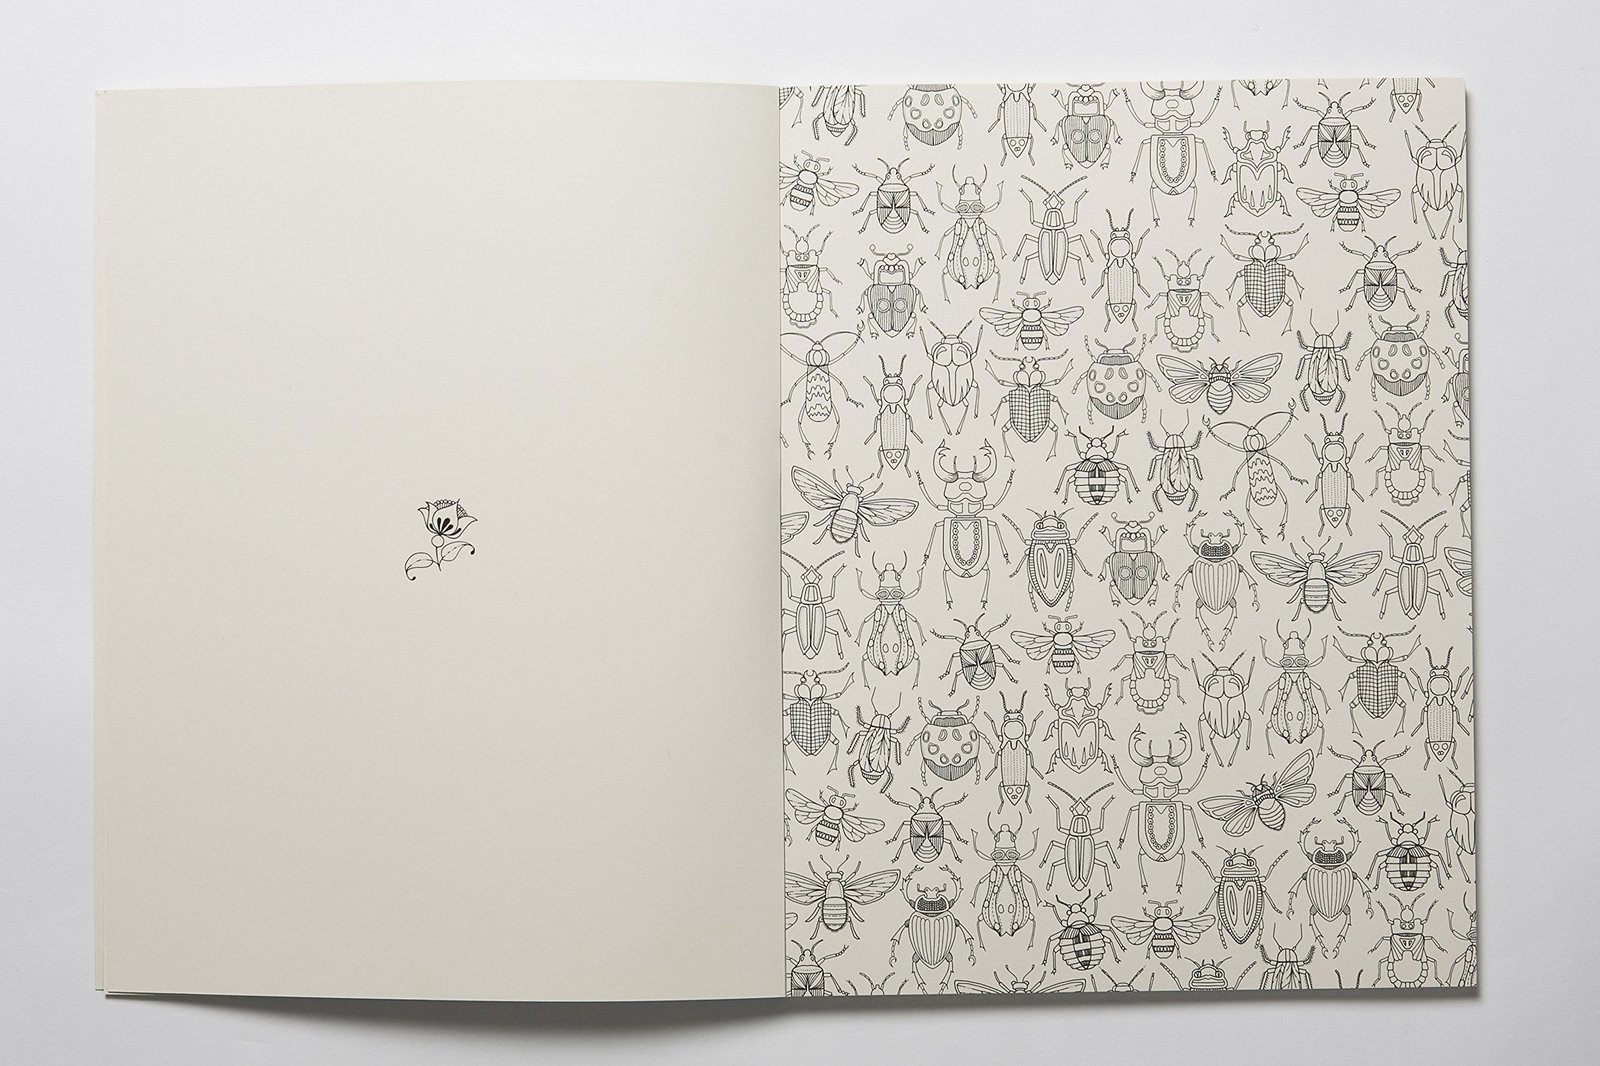 Secret Garden Artists Edition 20 Drawings To Colour And Frame By Johanna Basford